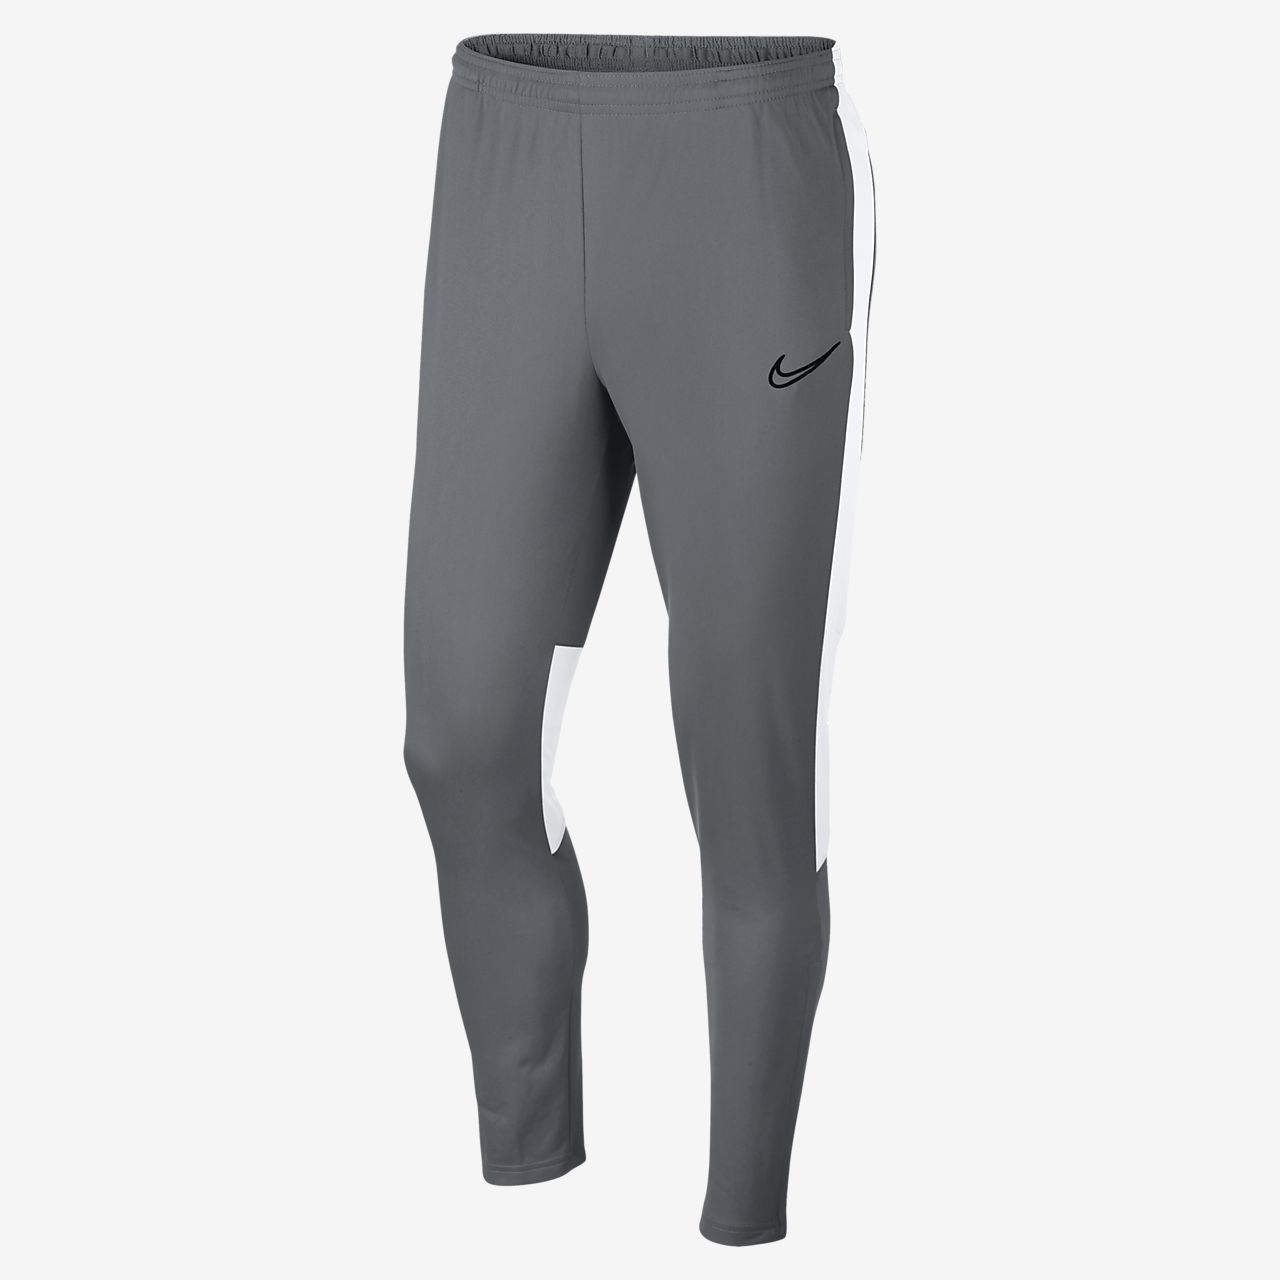 Nike Dri-FIT Academy Men's Football Pants